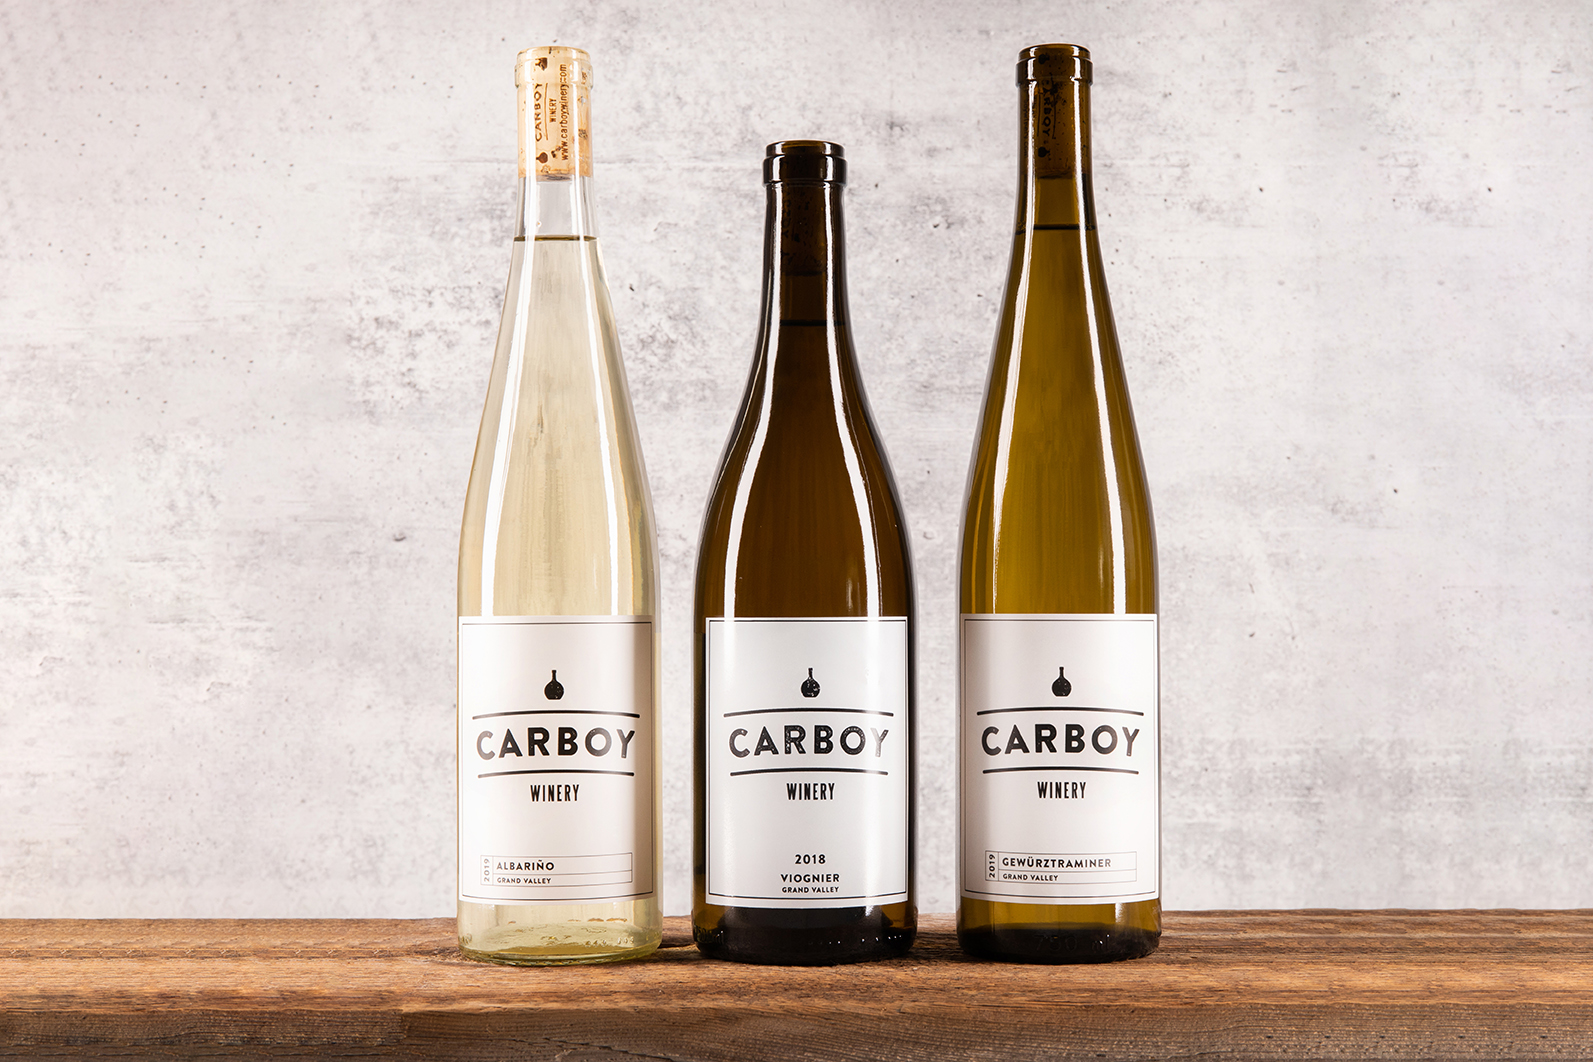 Three bottles of Carboy Winery wines sit on a wooden table with a concrete background.